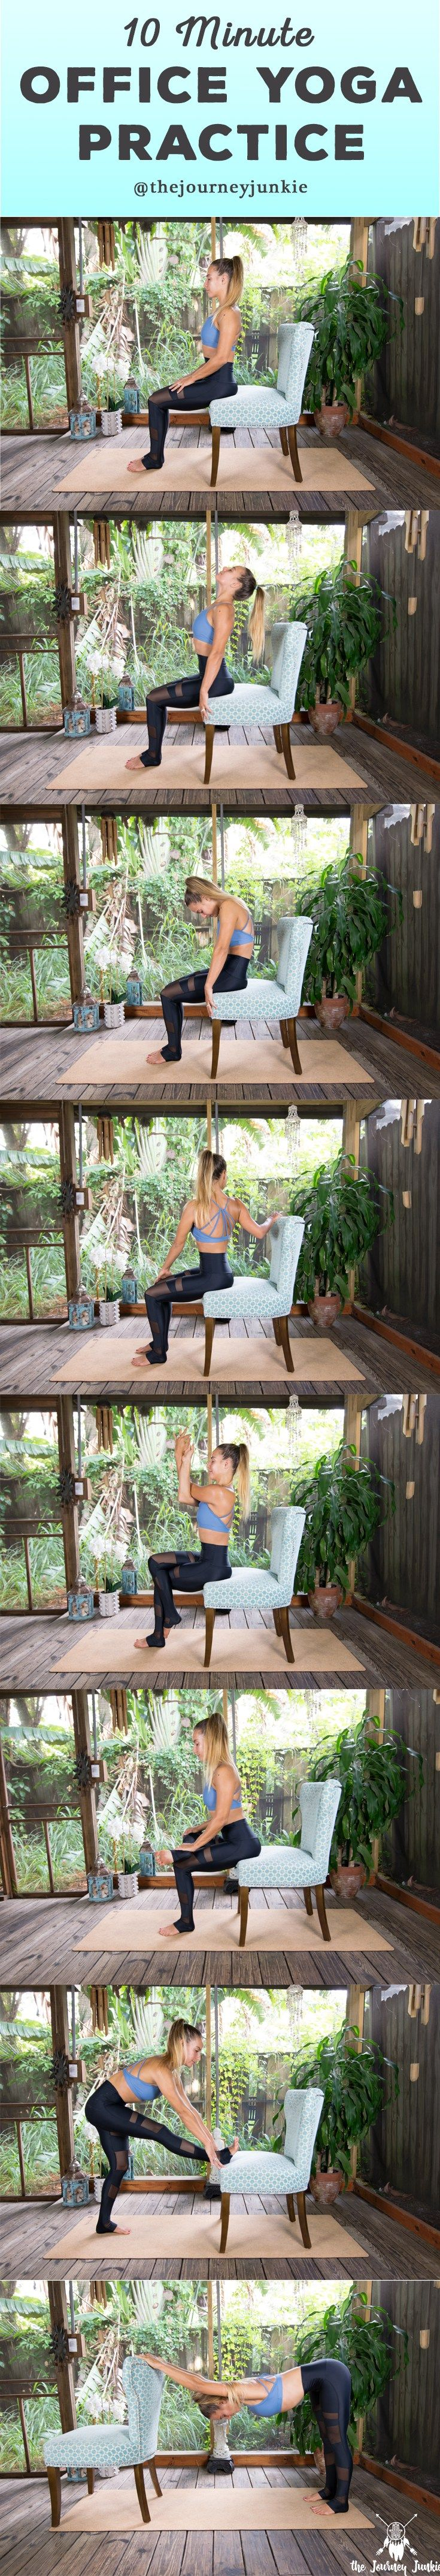 Office Yoga: 10 Minute Routine to Release Tension - Pin now, do at work tomorrow!